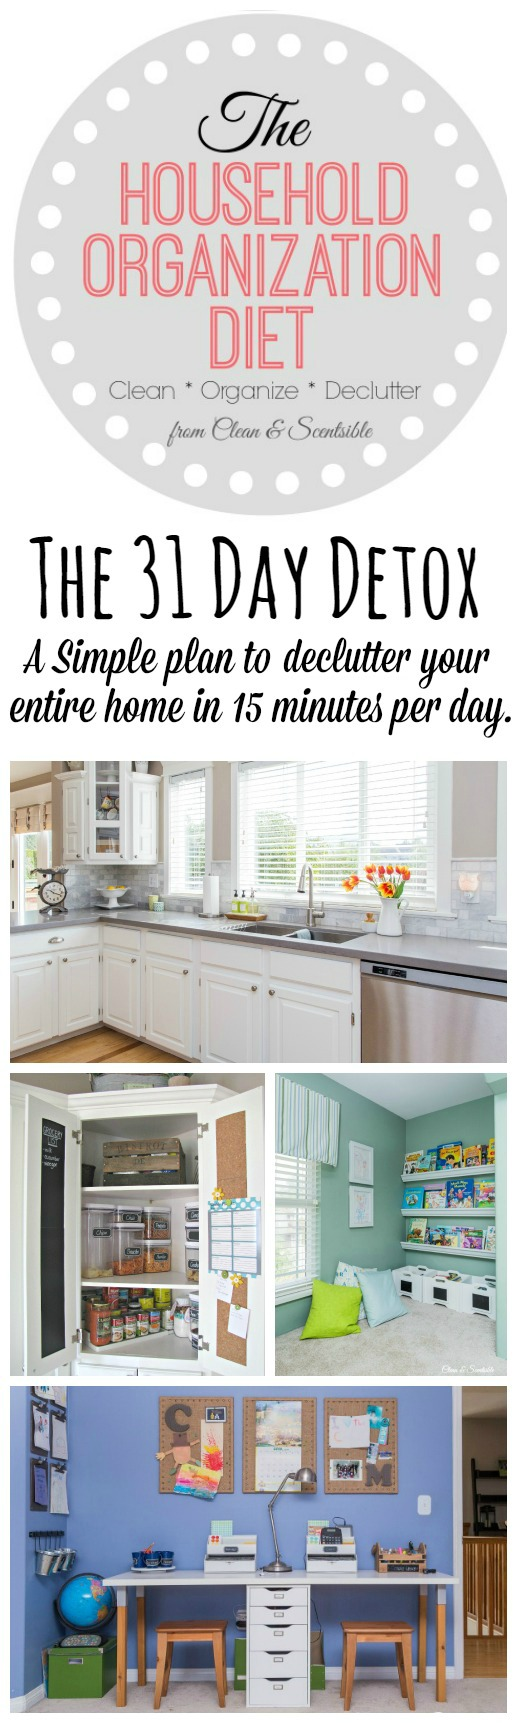 Follow this simple 31 day plan to jumpstart your decluttering process!